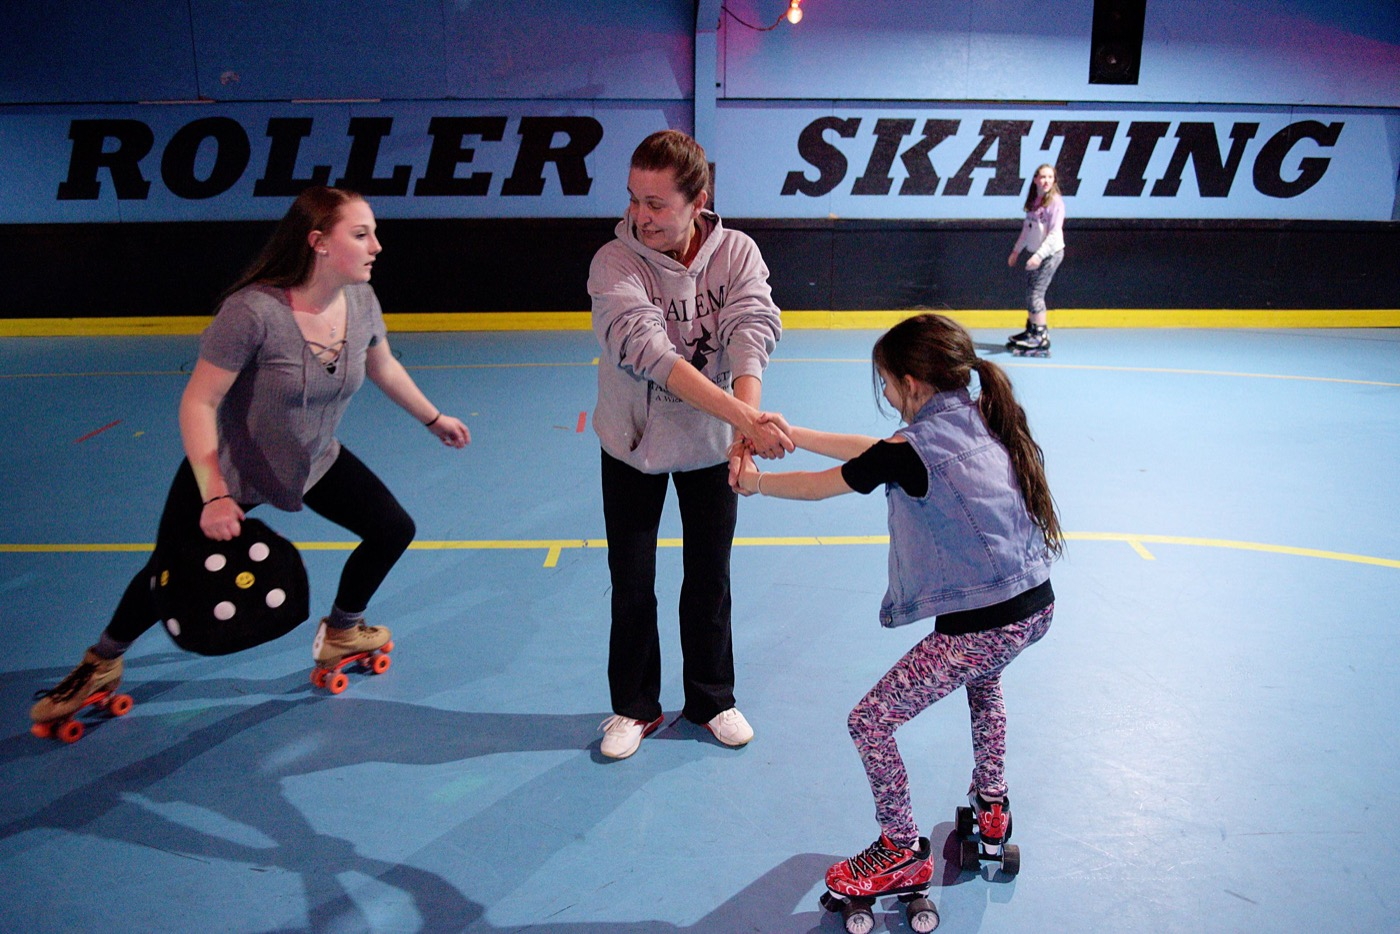 Roller skates jcpenney - Company News April 2017 Featuring Great View Roller Skating Video Enterprise